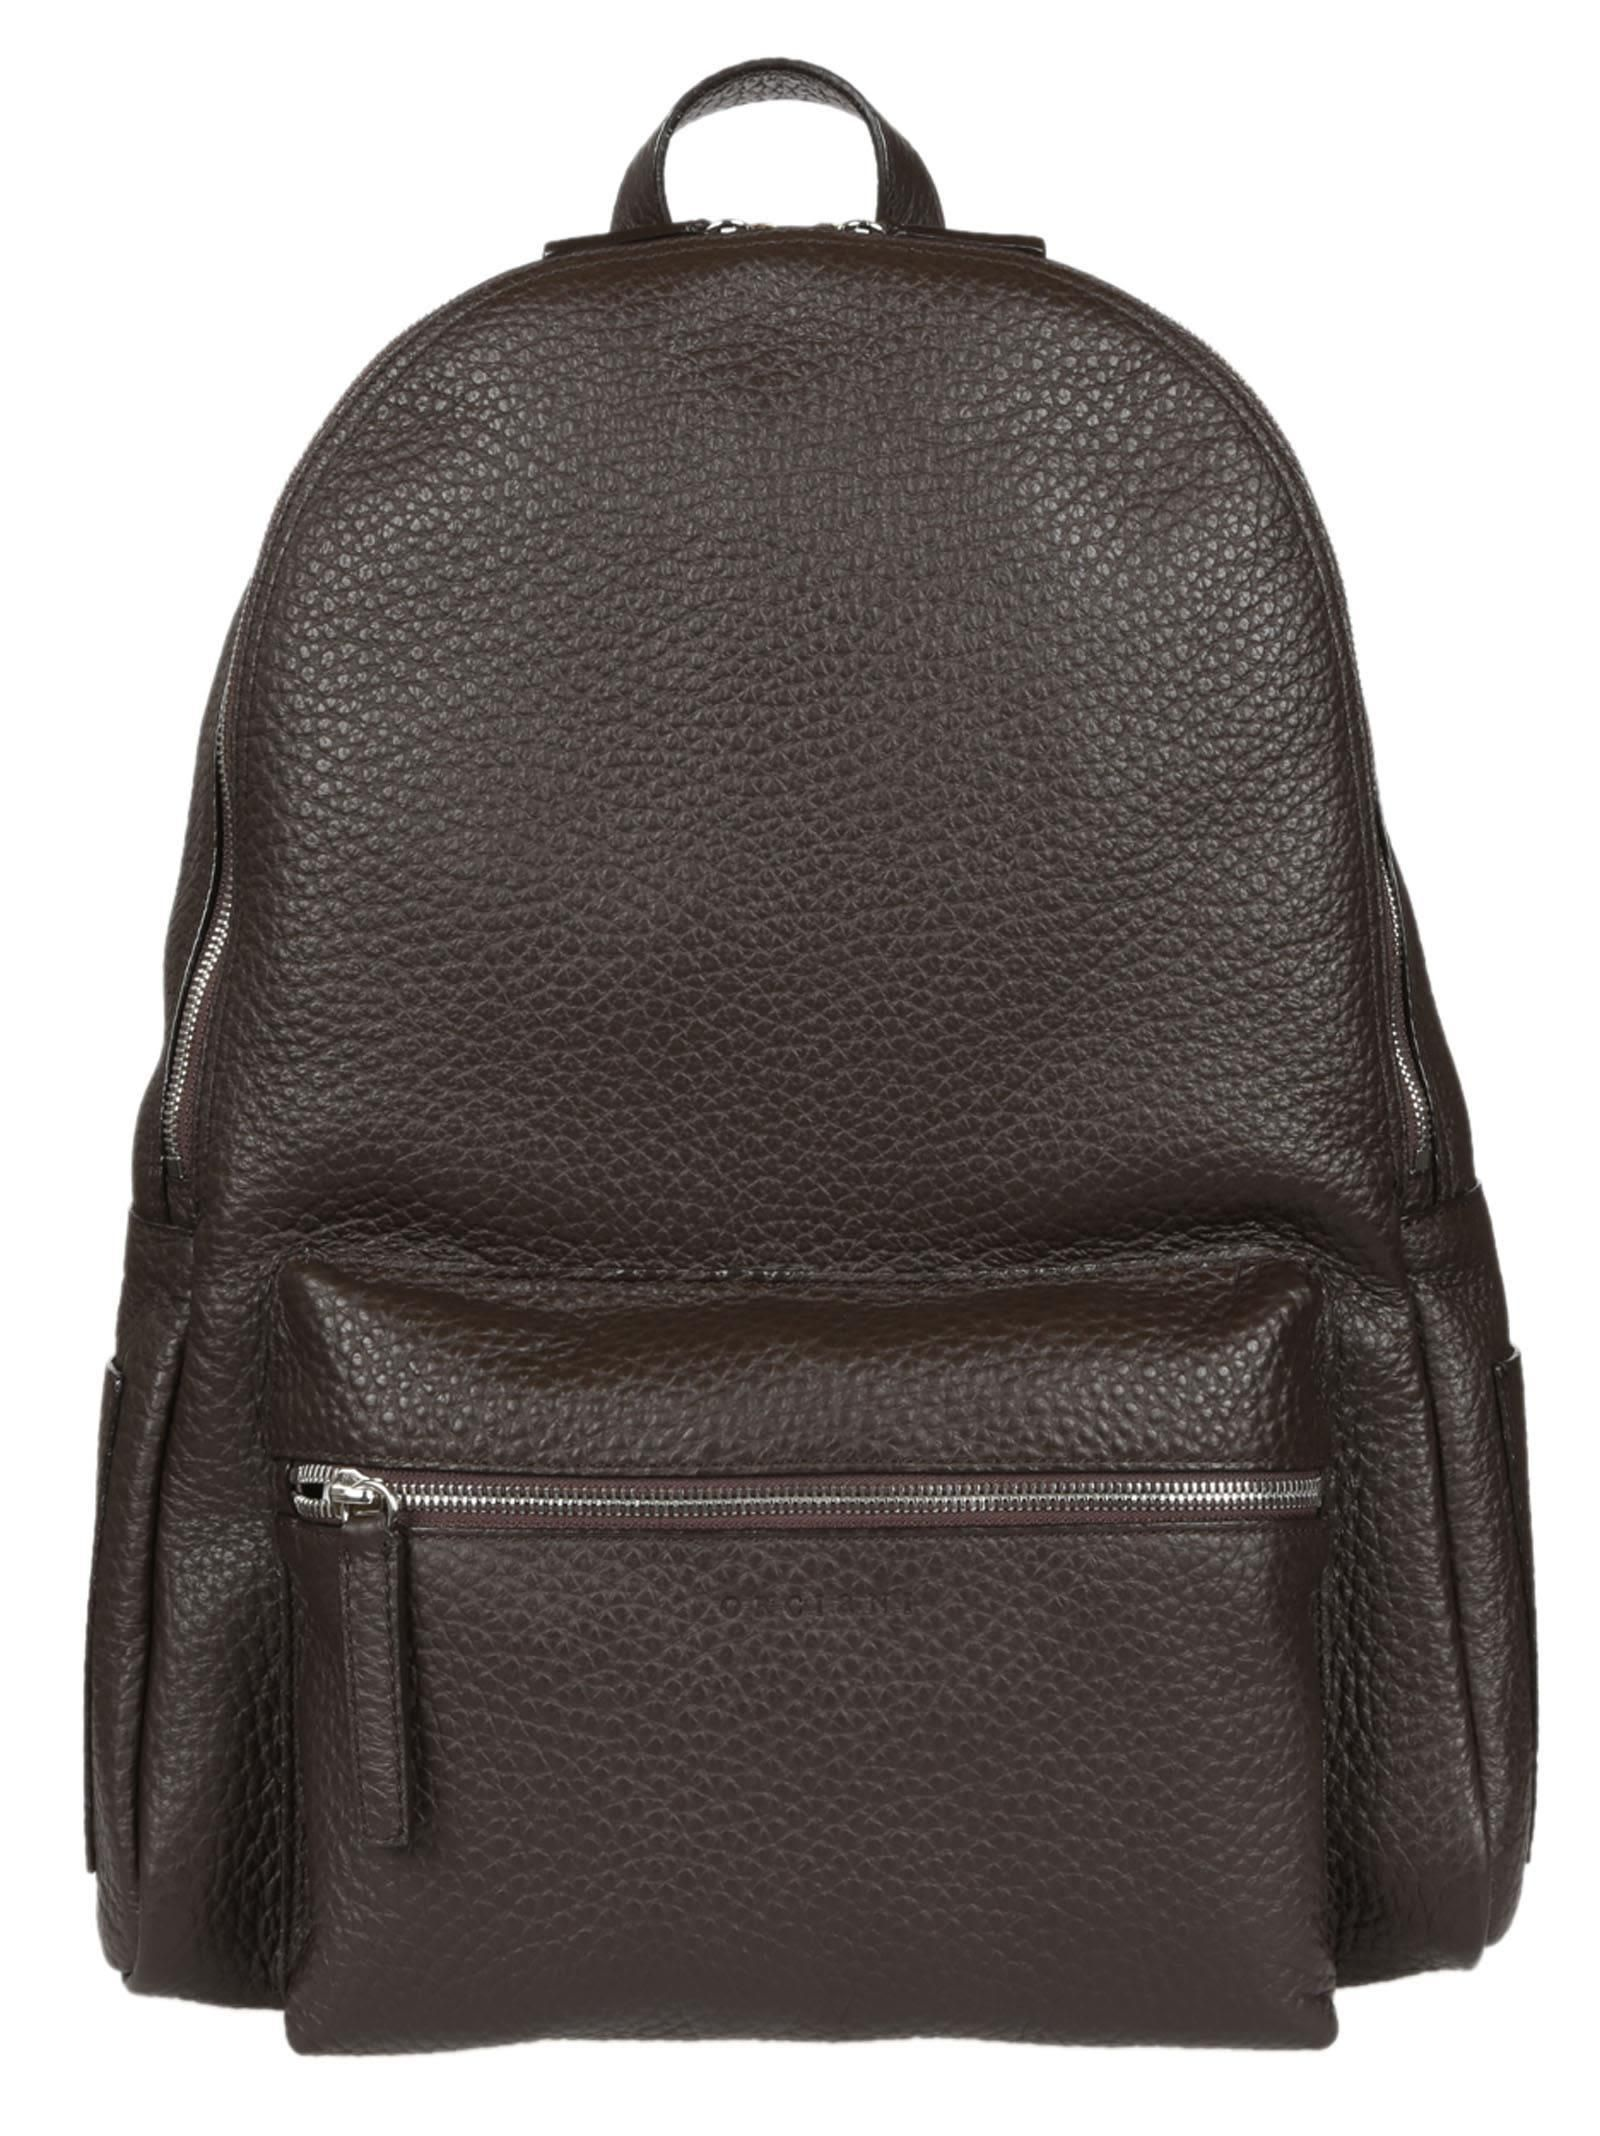 Orciani Classic Backpack New Sale Online Sale Many Kinds Of Factory Outlet For Sale Red Pre Order Eastbay Buy Cheap 2018 RFEt6